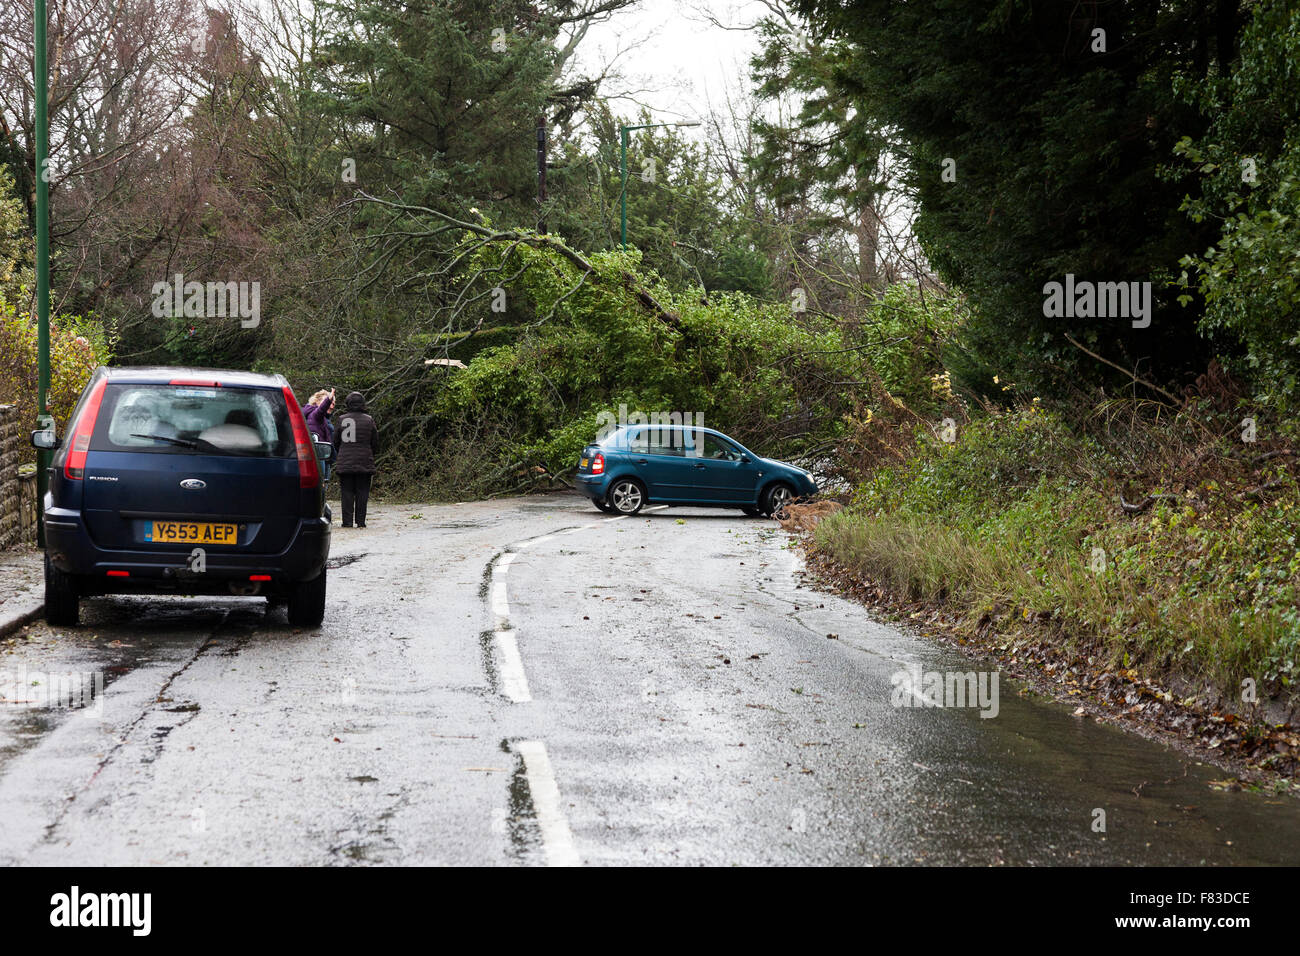 Lartington, Teesdale, County Durham, UK. 5th December 2015. UK Weather. Heavy overnight rain and storm force winds - Stock Image